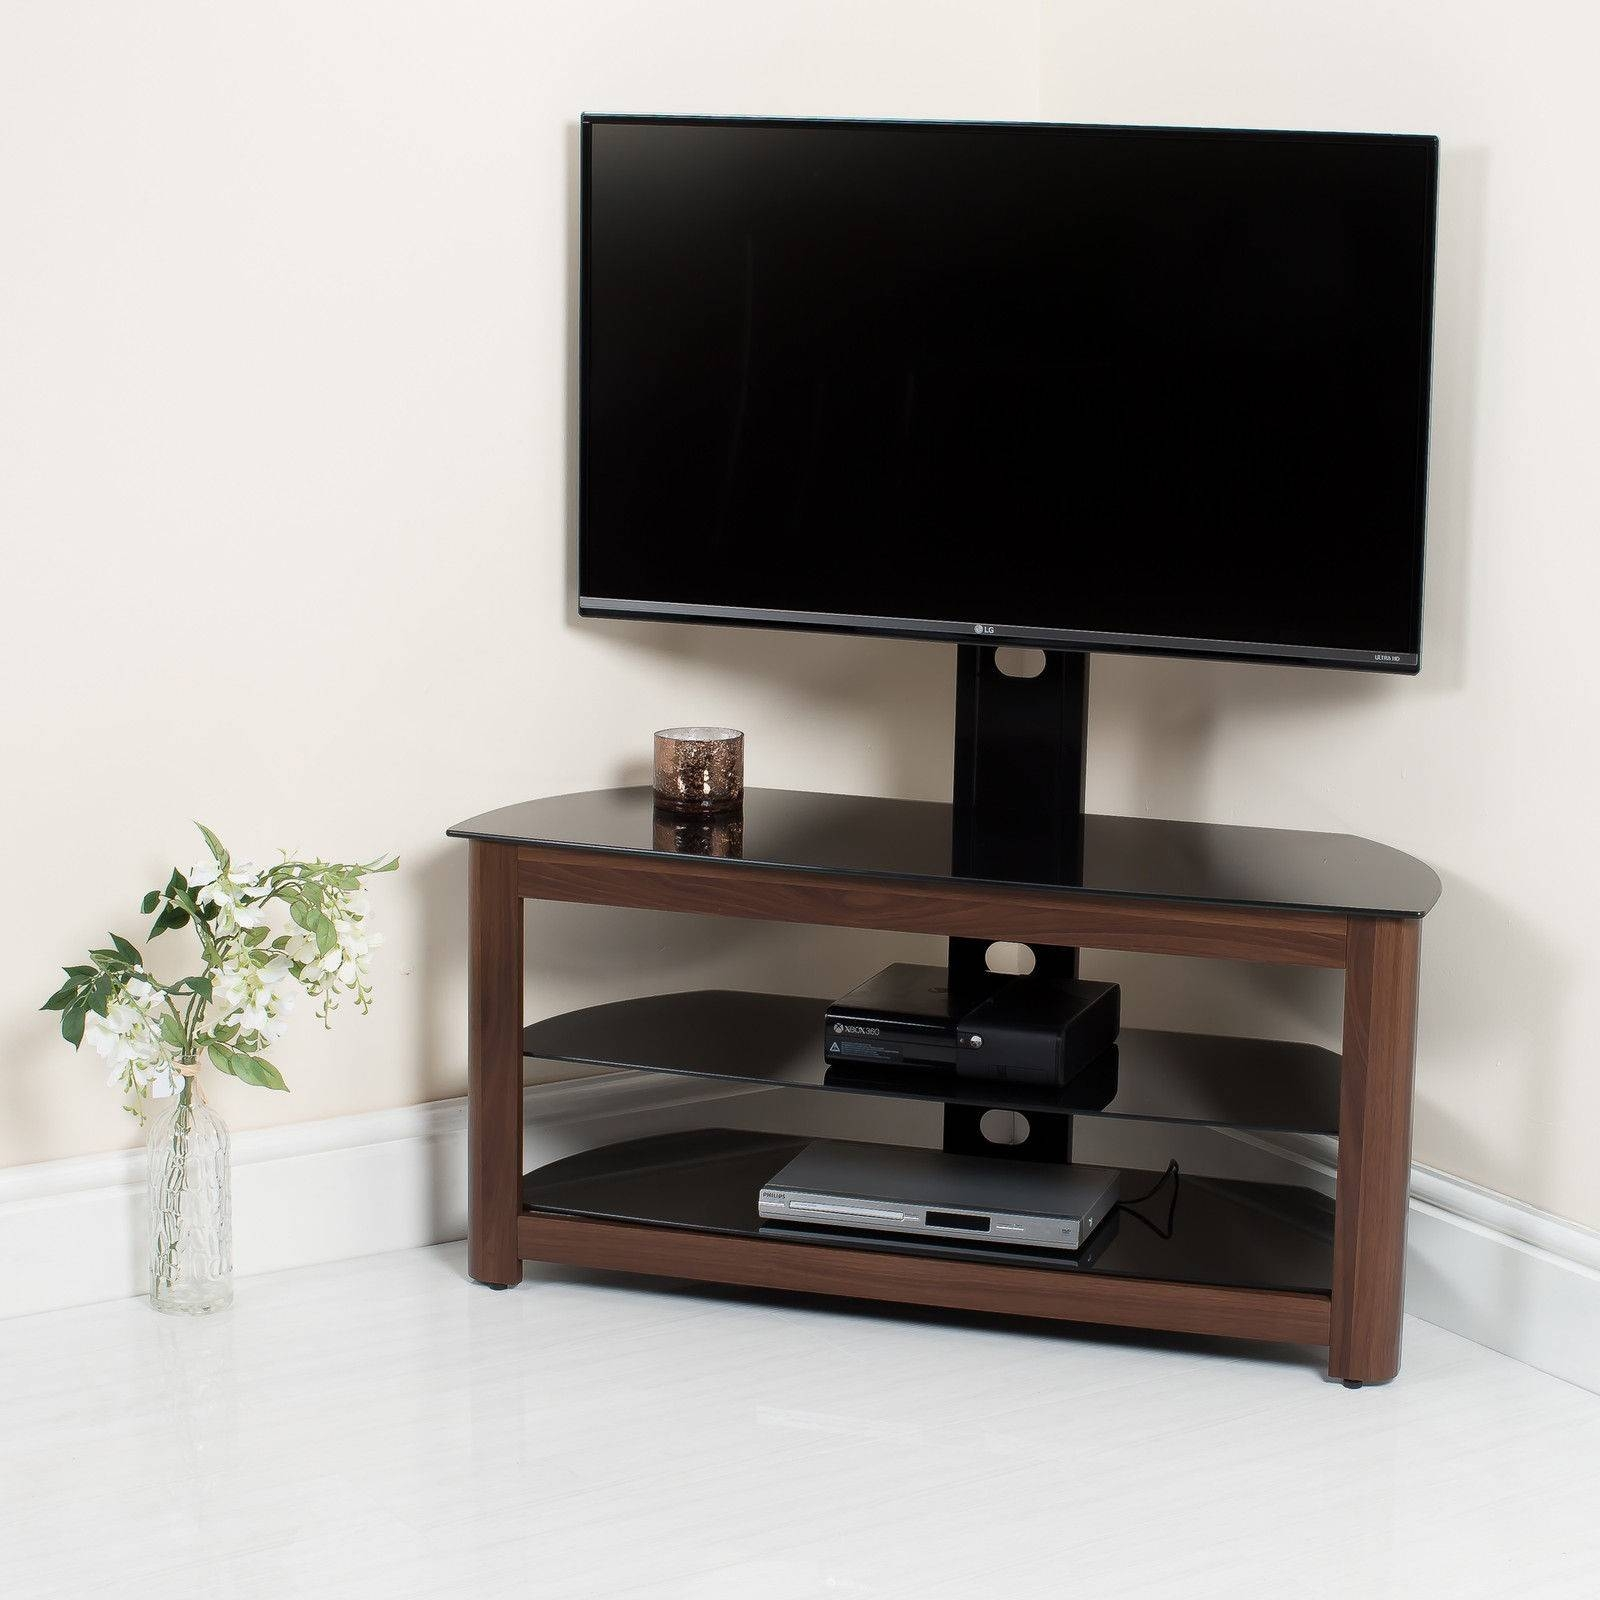 Walnut High Gloss Tv Stand With Swivel Bracket Abreo Home Furniture with Modern Walnut Tv Stands (Image 14 of 15)